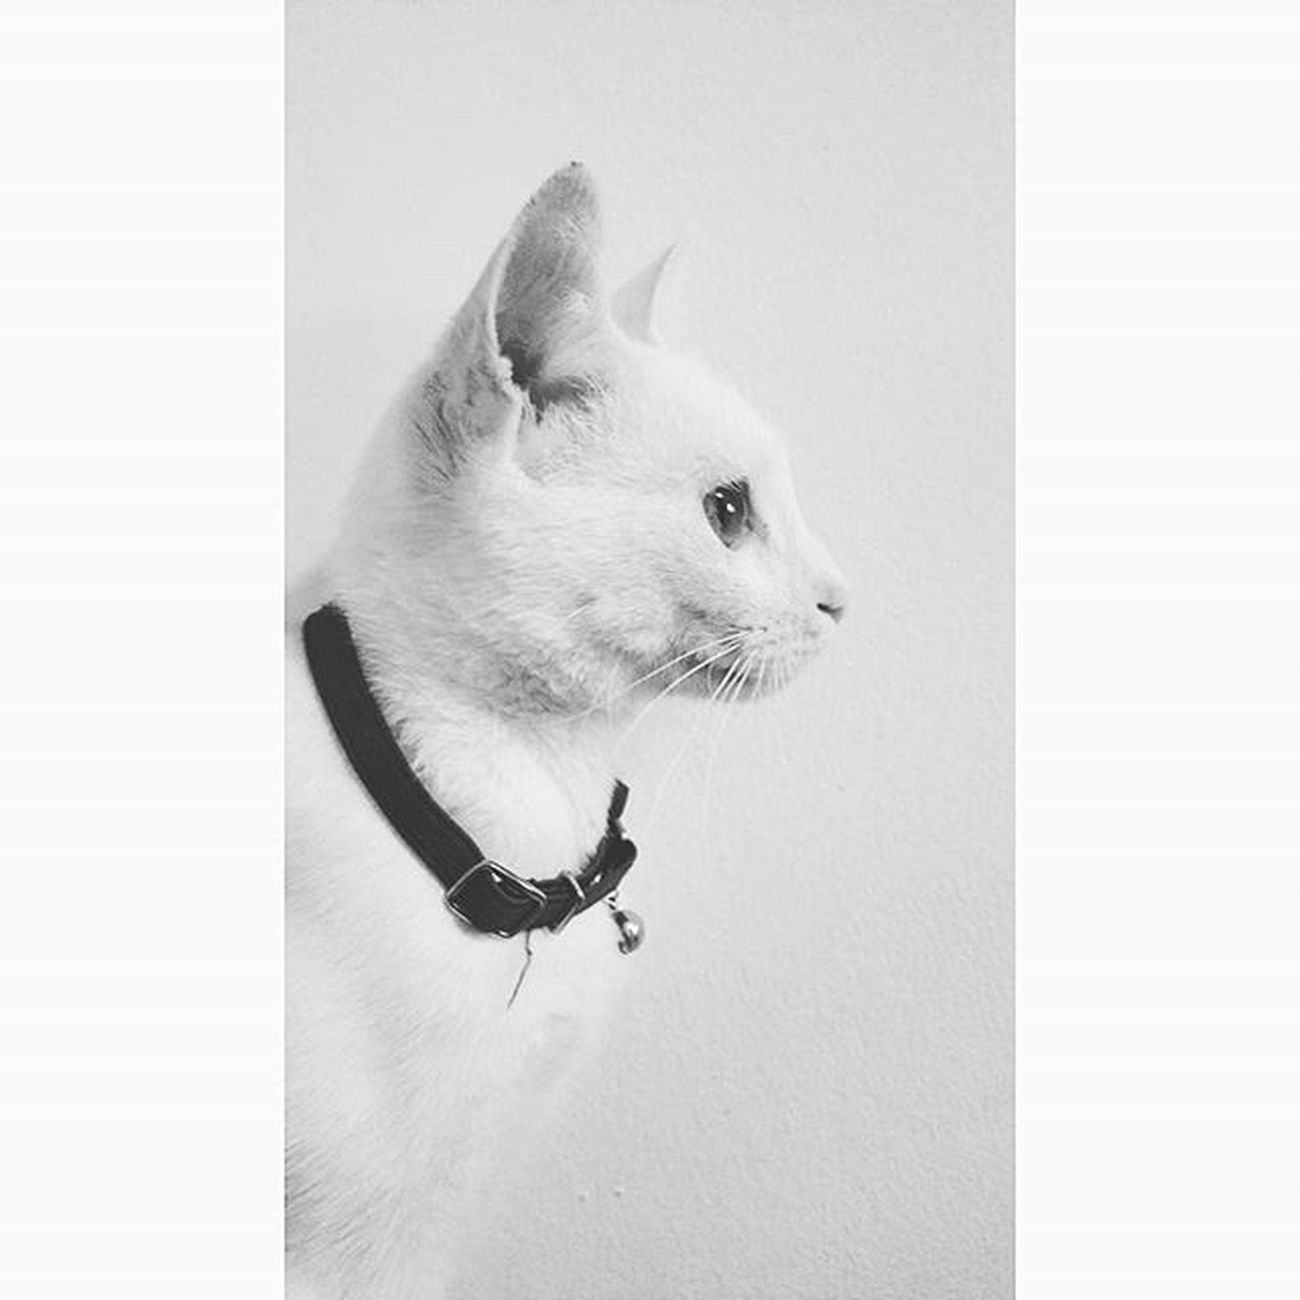 Highkey Ig_contrast_bnw Bnw_society Bnw_life Ig_bnw Bnw_captures High Key Highkey__ Catlife Catsofinstagram Catlovers Cats Bnwsouls Amateurs_bnw Bnw_drama Rsa_bnw Top_bnw Pocket_bnw Bw_lover Bw_mania Foto_blackwhite Bnw_life_shots Sombrebw Bnwmood Blackandwhite contrast lights shadows bnw bwworld_tr